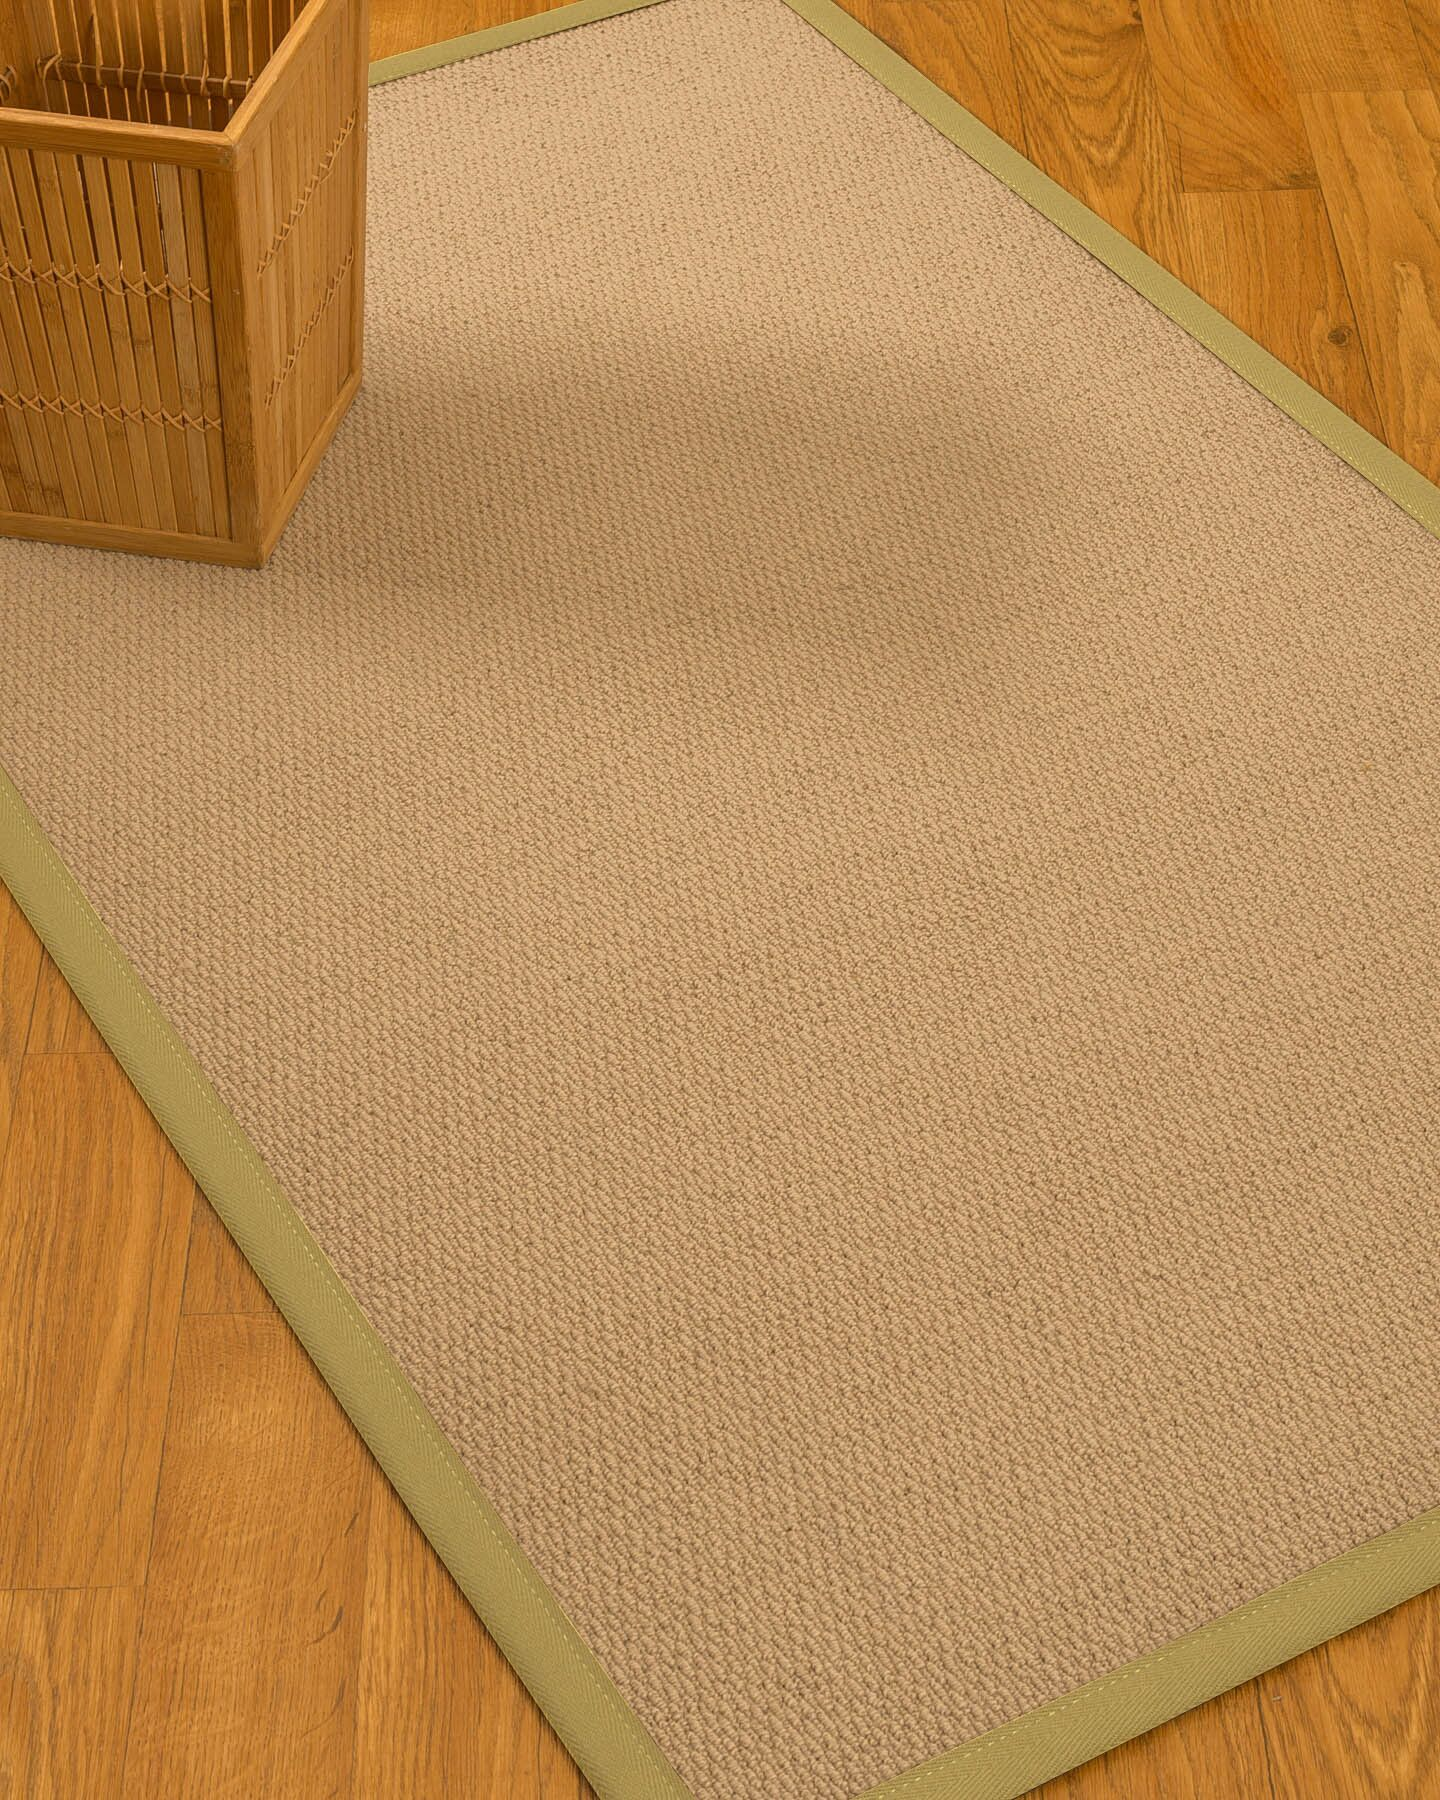 Chea Border Hand-Woven Wool Beige/Sand Area Rug Rug Size: Rectangle 5' x 8', Rug Pad Included: Yes